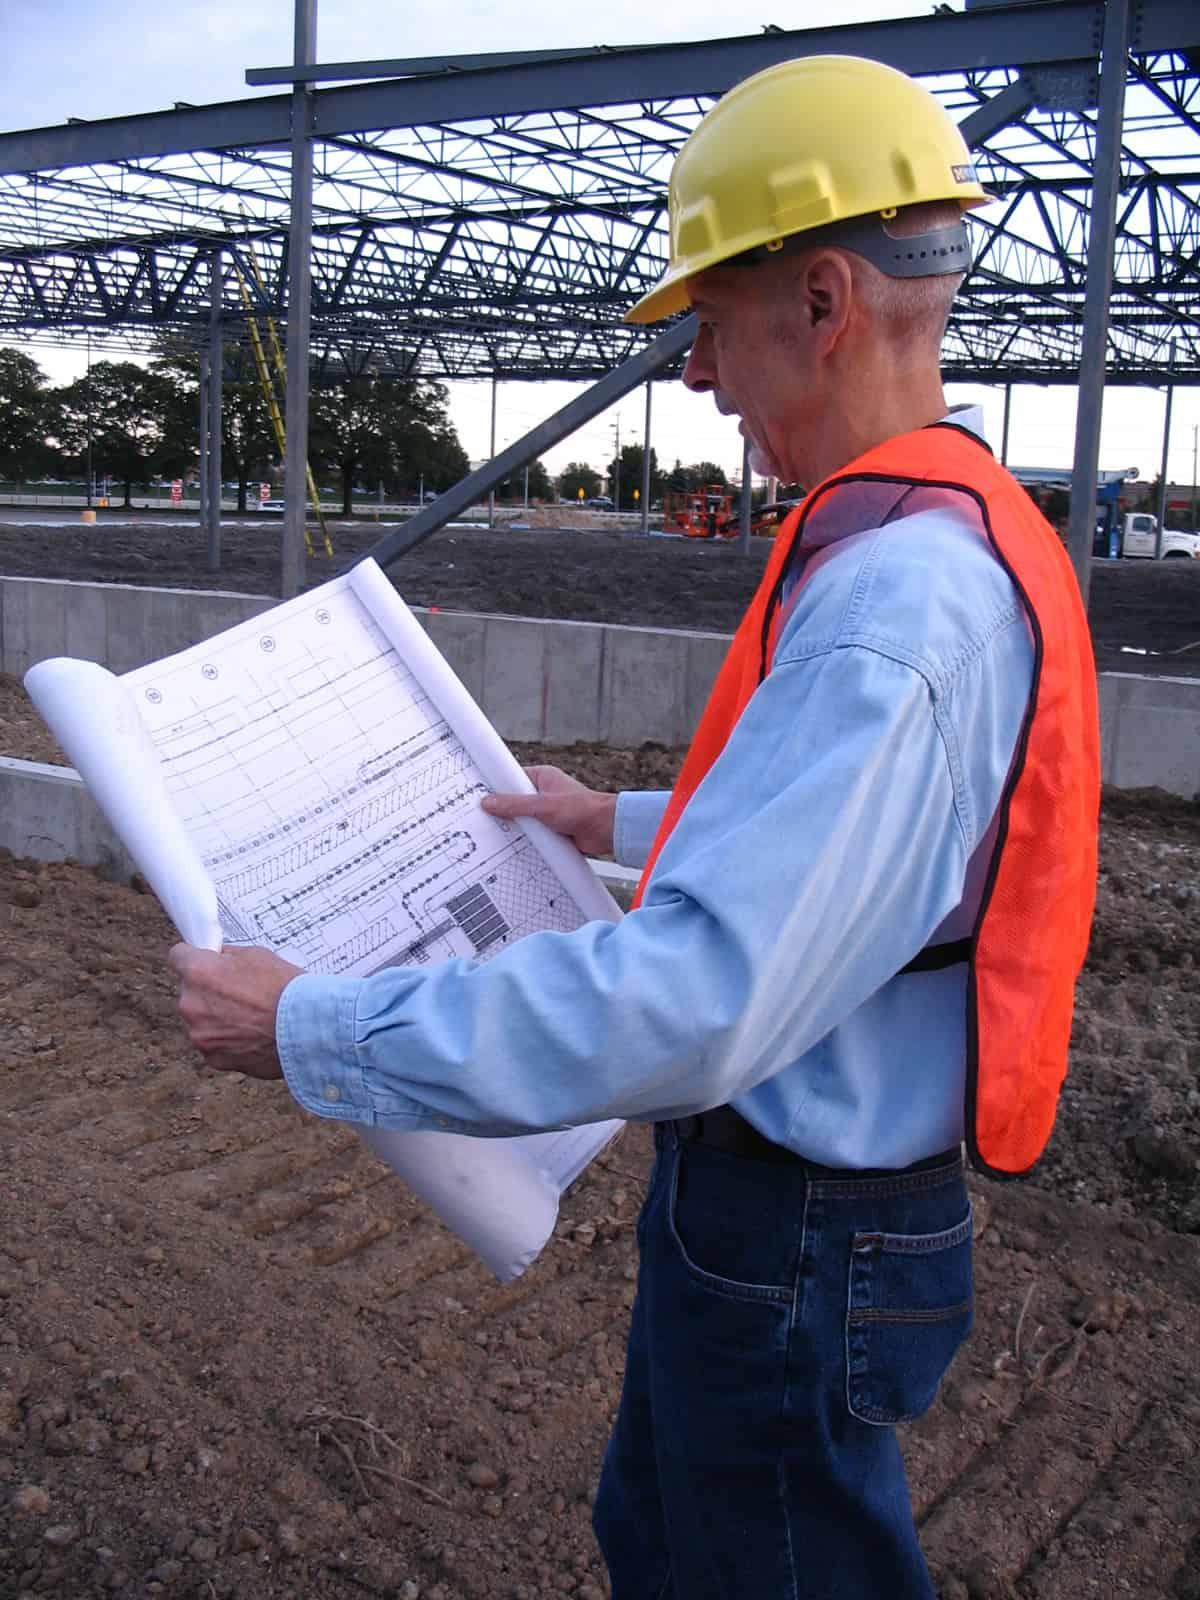 Onsite Installation Support, Experienced Industrial Engineering Consultant, Lean Manufacturing Consultant, SCM Consultant, Productivity Improvement Consultants, Process Improvement Consultant, Business Process Improvement Consultant, Operations Management Consultant, Supply Chain Planning Consultant, Strategic Supply Chain Consultants, Best Supply Chain Consultants, Top Supply Chain Consultants, Freelance Supply Chain Consultant, Material Handling Consultants